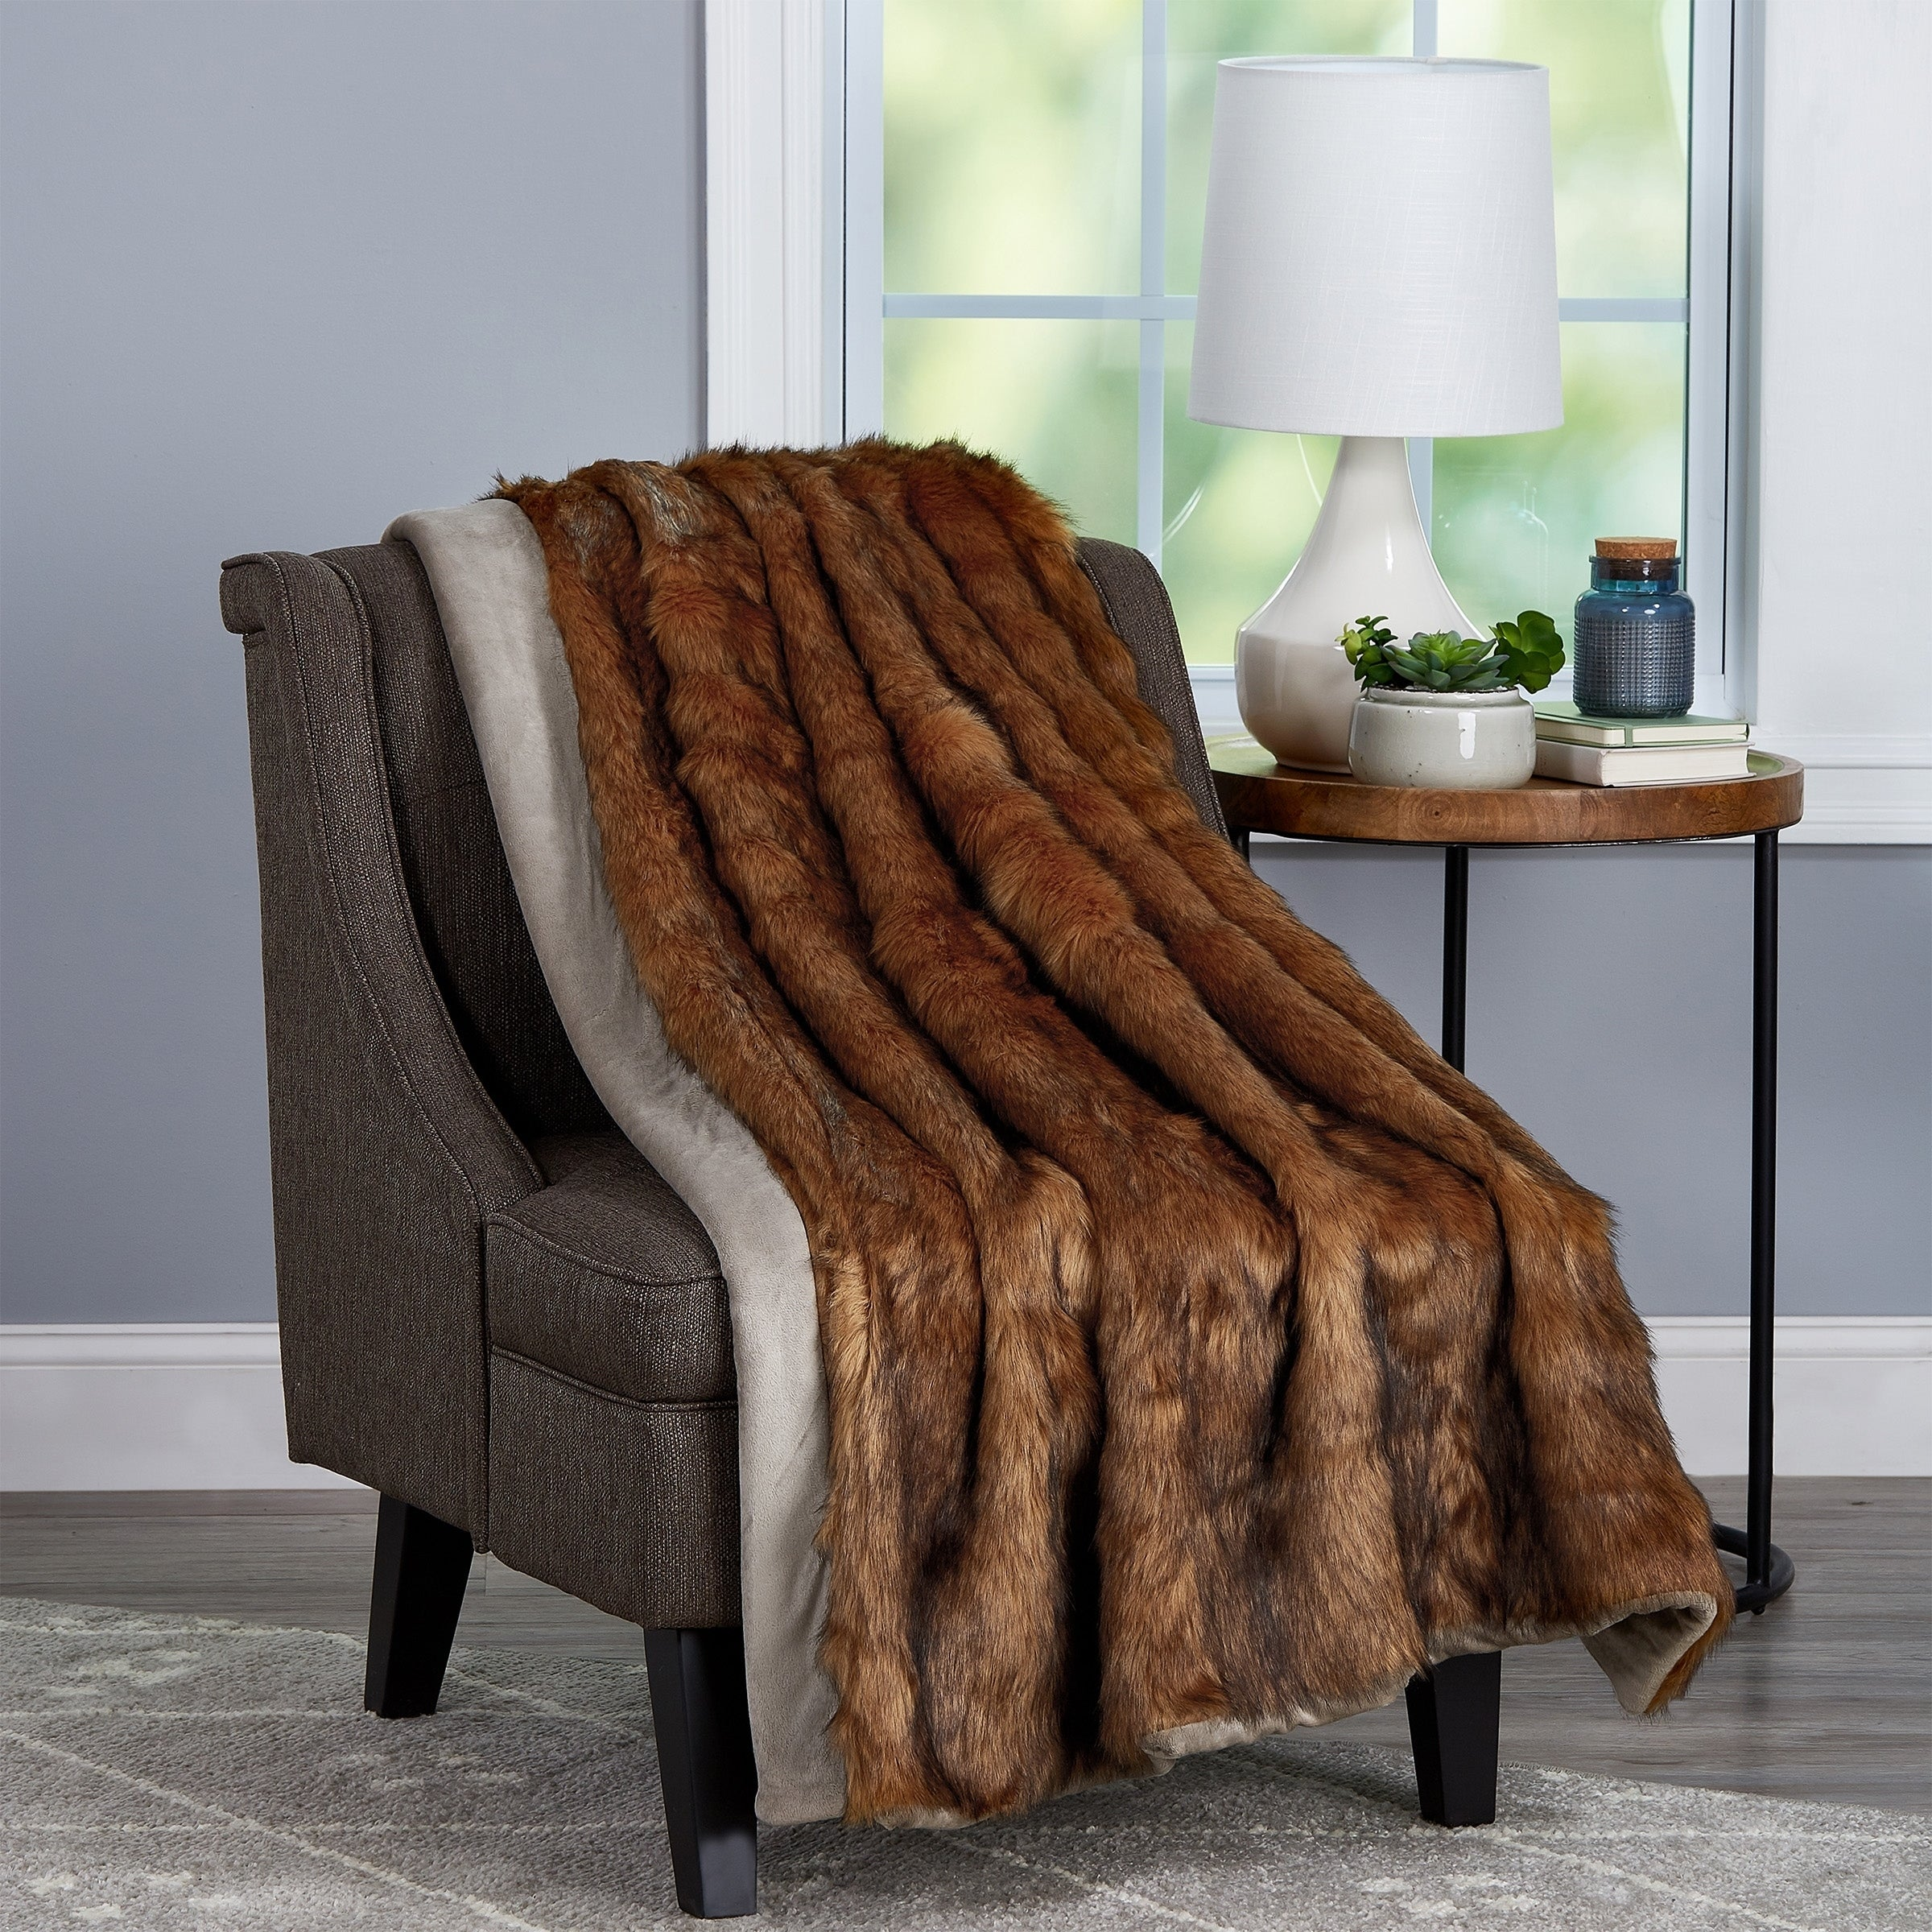 Shop For Fauxfur Throw Hypoallergenic Fauxfur Blanket Fauxmink Back And Gift Box 60x70 By Windsor Home Brown Get Free Delivery On Everything At Overstock Your Online Fashion Bedding Store Get 5 In Rewards With Club O 27146607